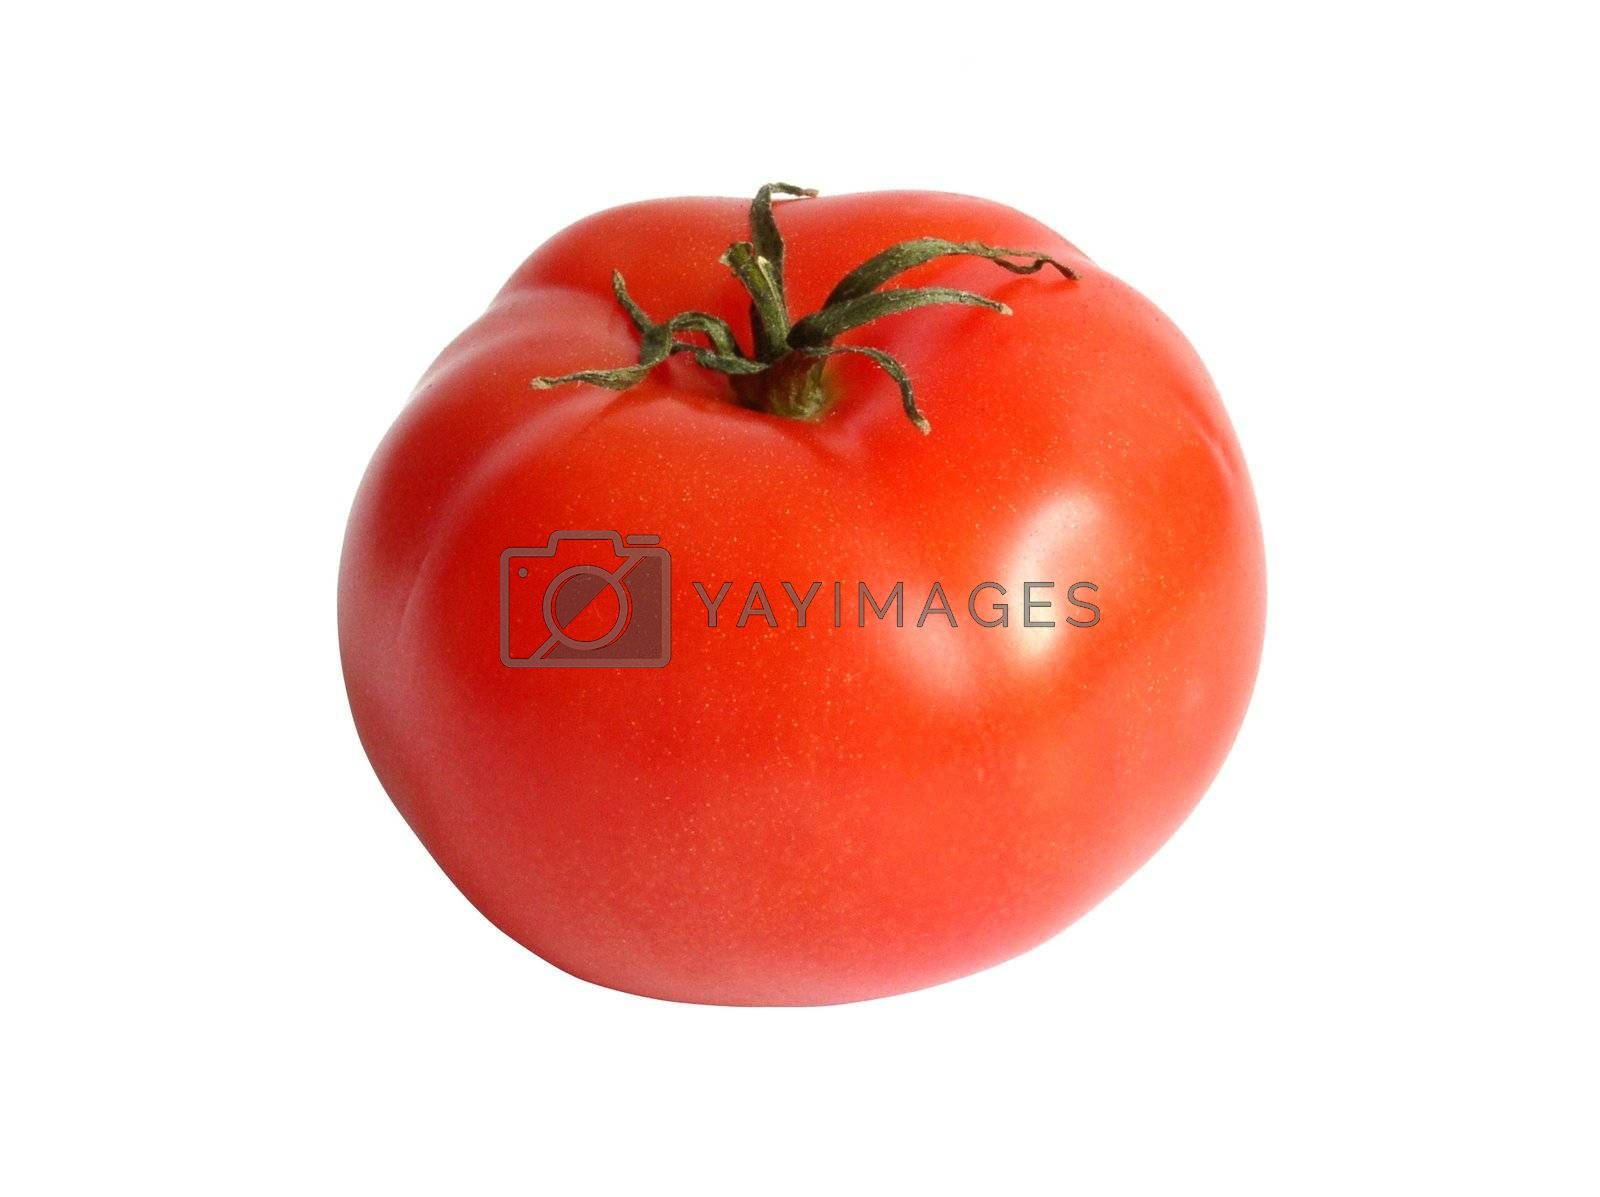 Royalty free image of tomato by kapp